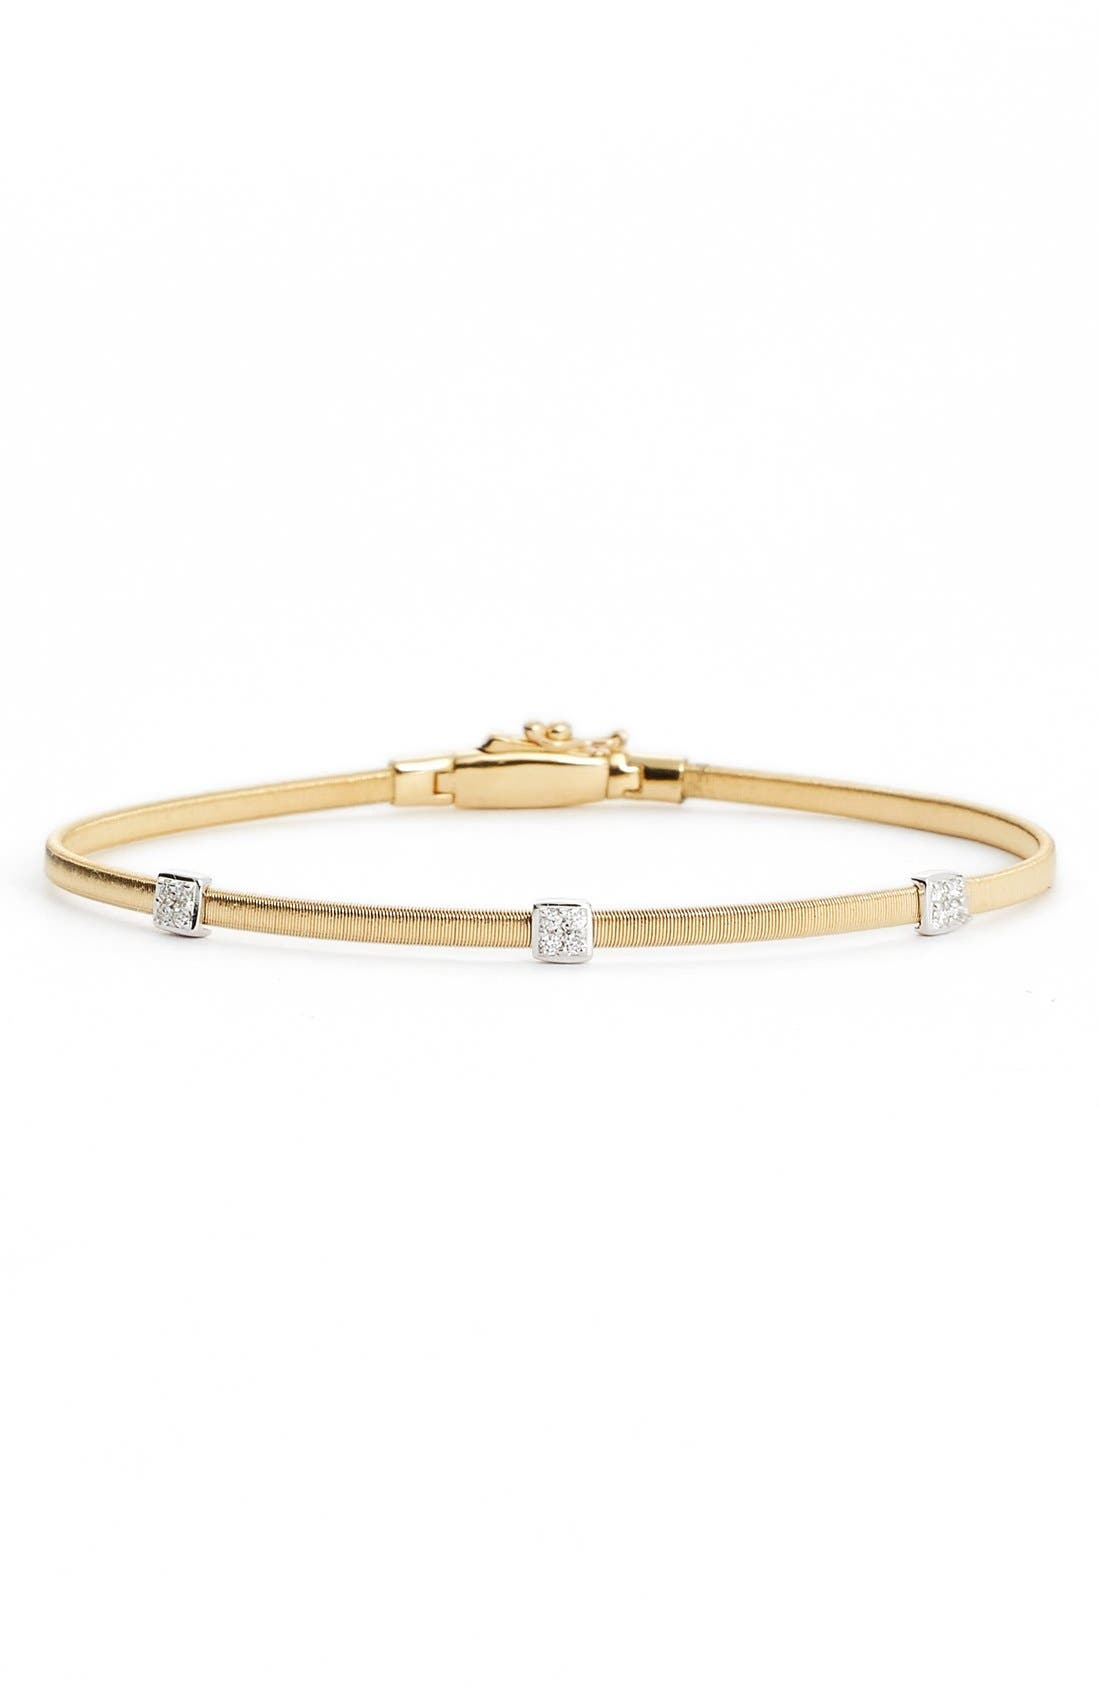 Masai Small Station Diamond Bracelet,                             Main thumbnail 1, color,                             YELLOW GOLD